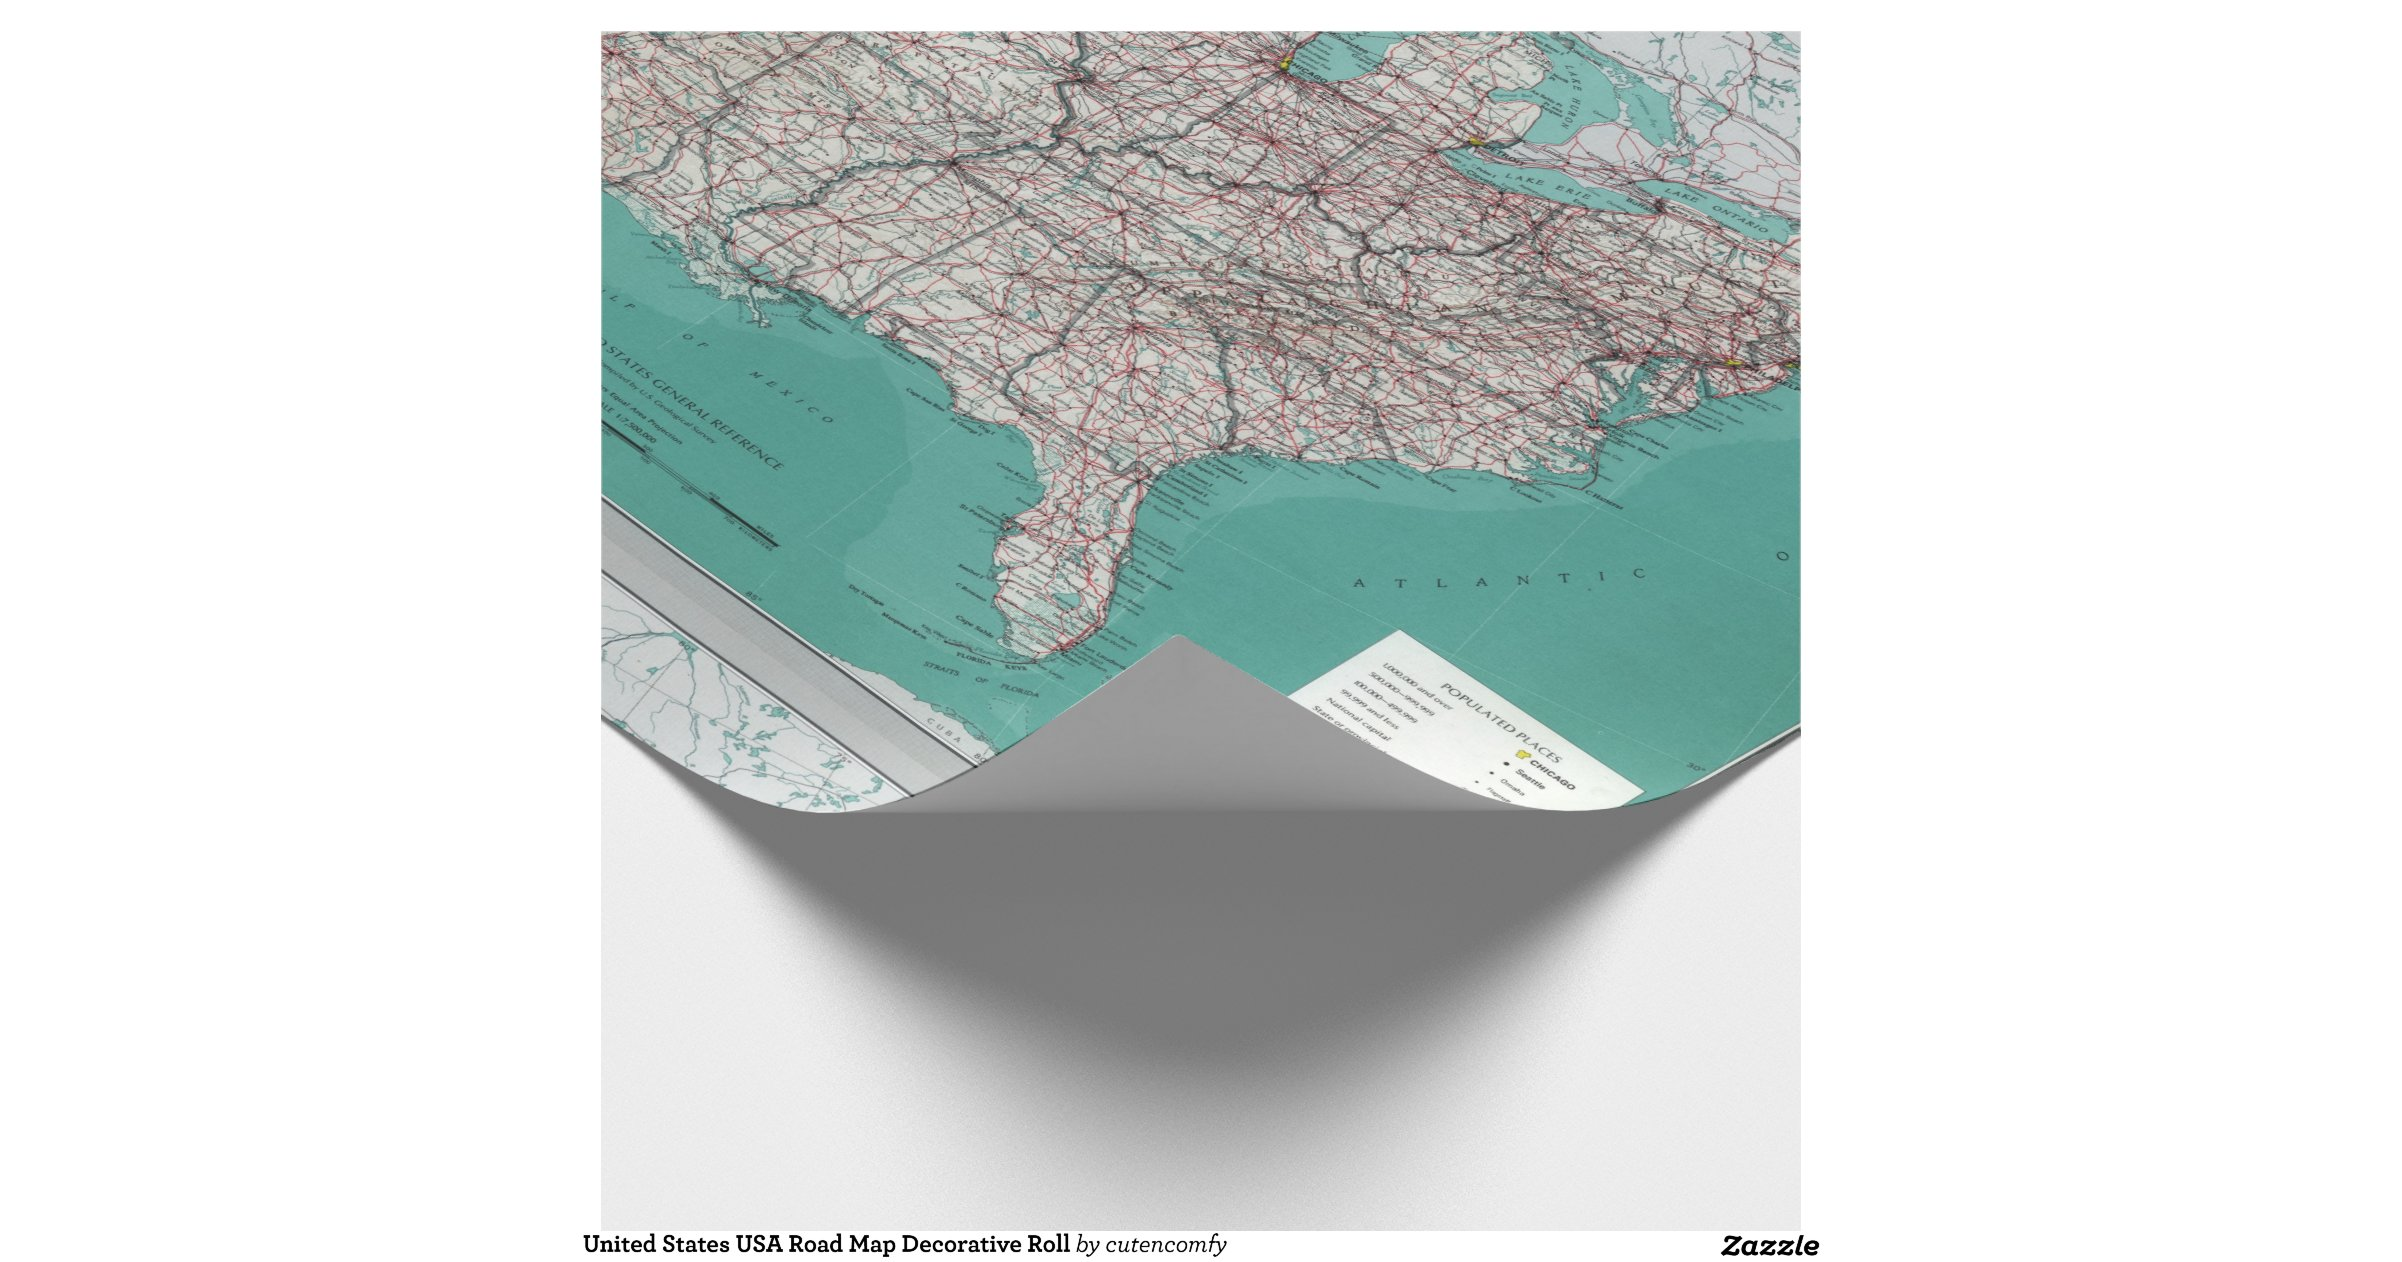 United states usa road map decorative roll wrappingpaper for Decorative paper rolls